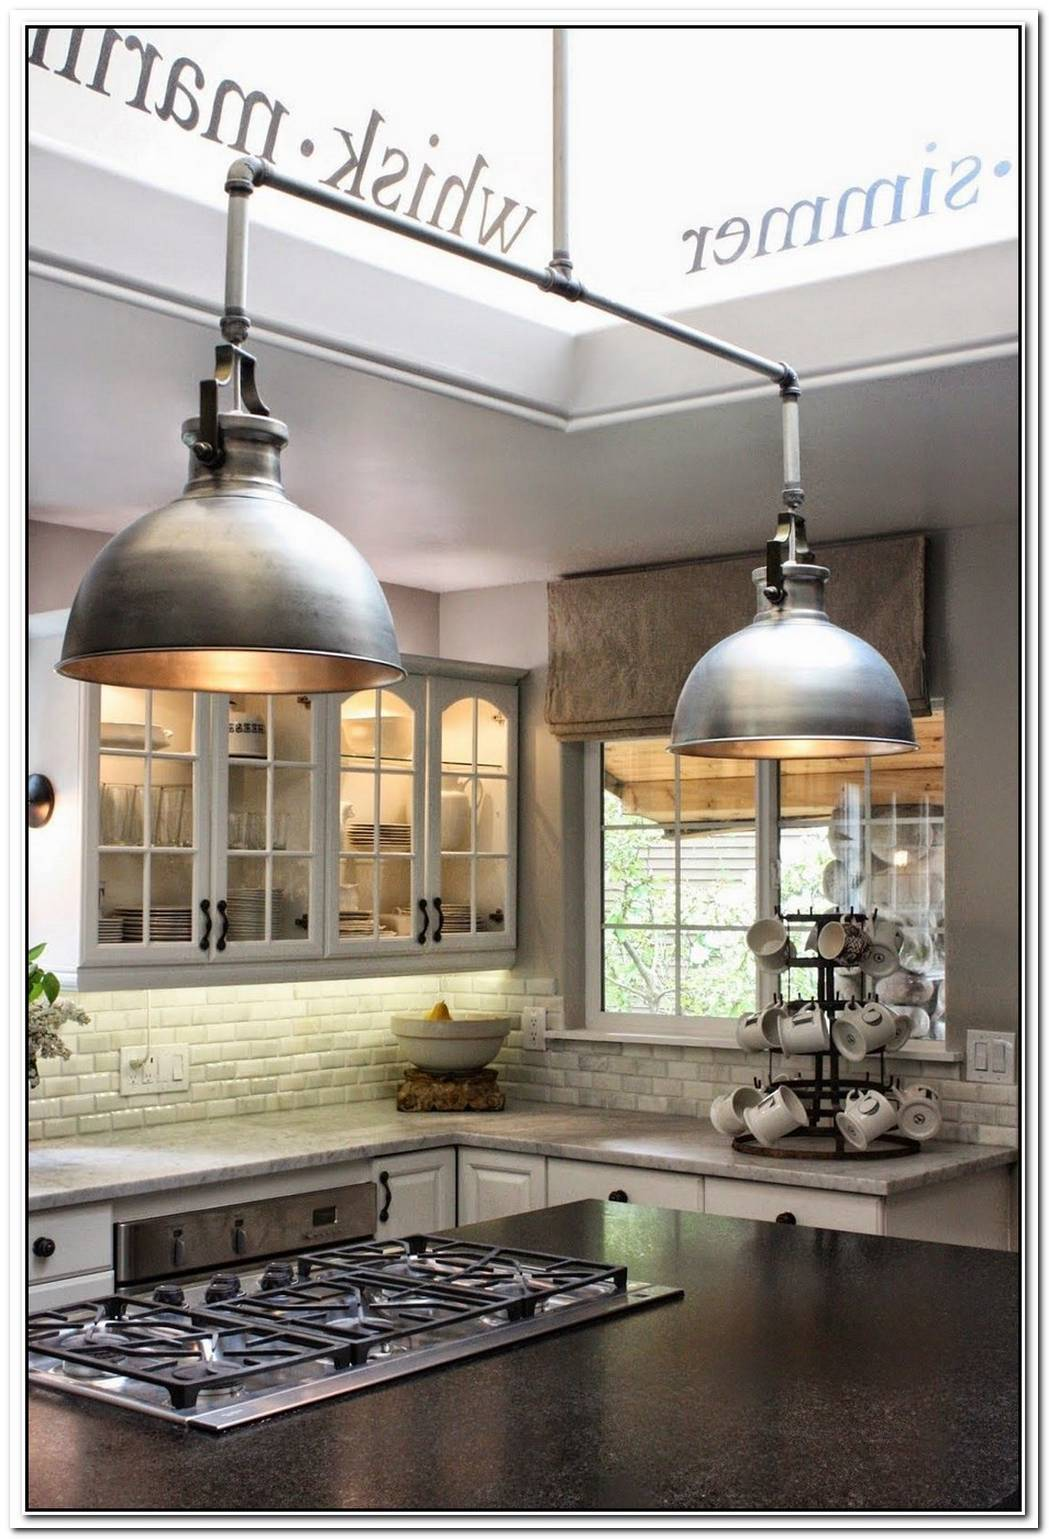 10 Industrial Kitchen Island Lighting Ideas For An Eye Catching Yet Cohesive Décor